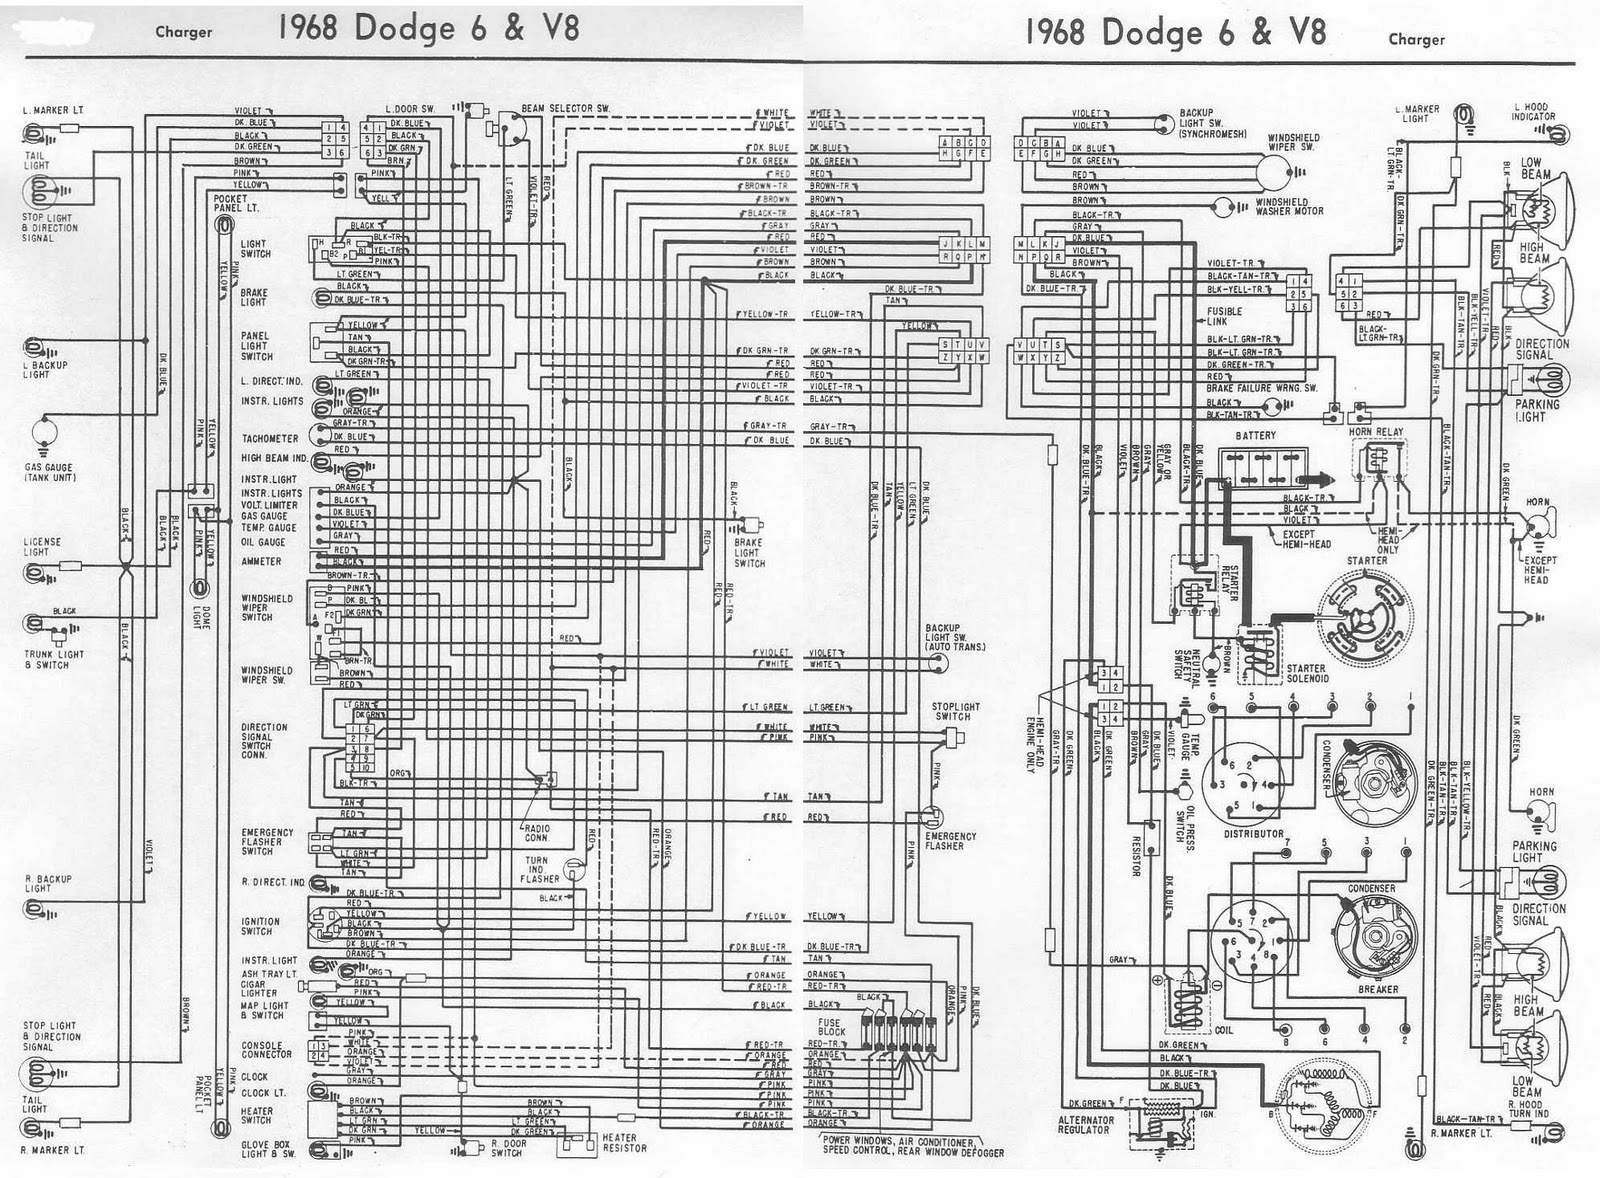 Dodge+Charger+1968+6+and+V8+Complete+Electrical+Wiring+Diagram dodge charger wiring diagram dodge wiring diagrams instruction 1970 dodge coronet wiring diagram at couponss.co